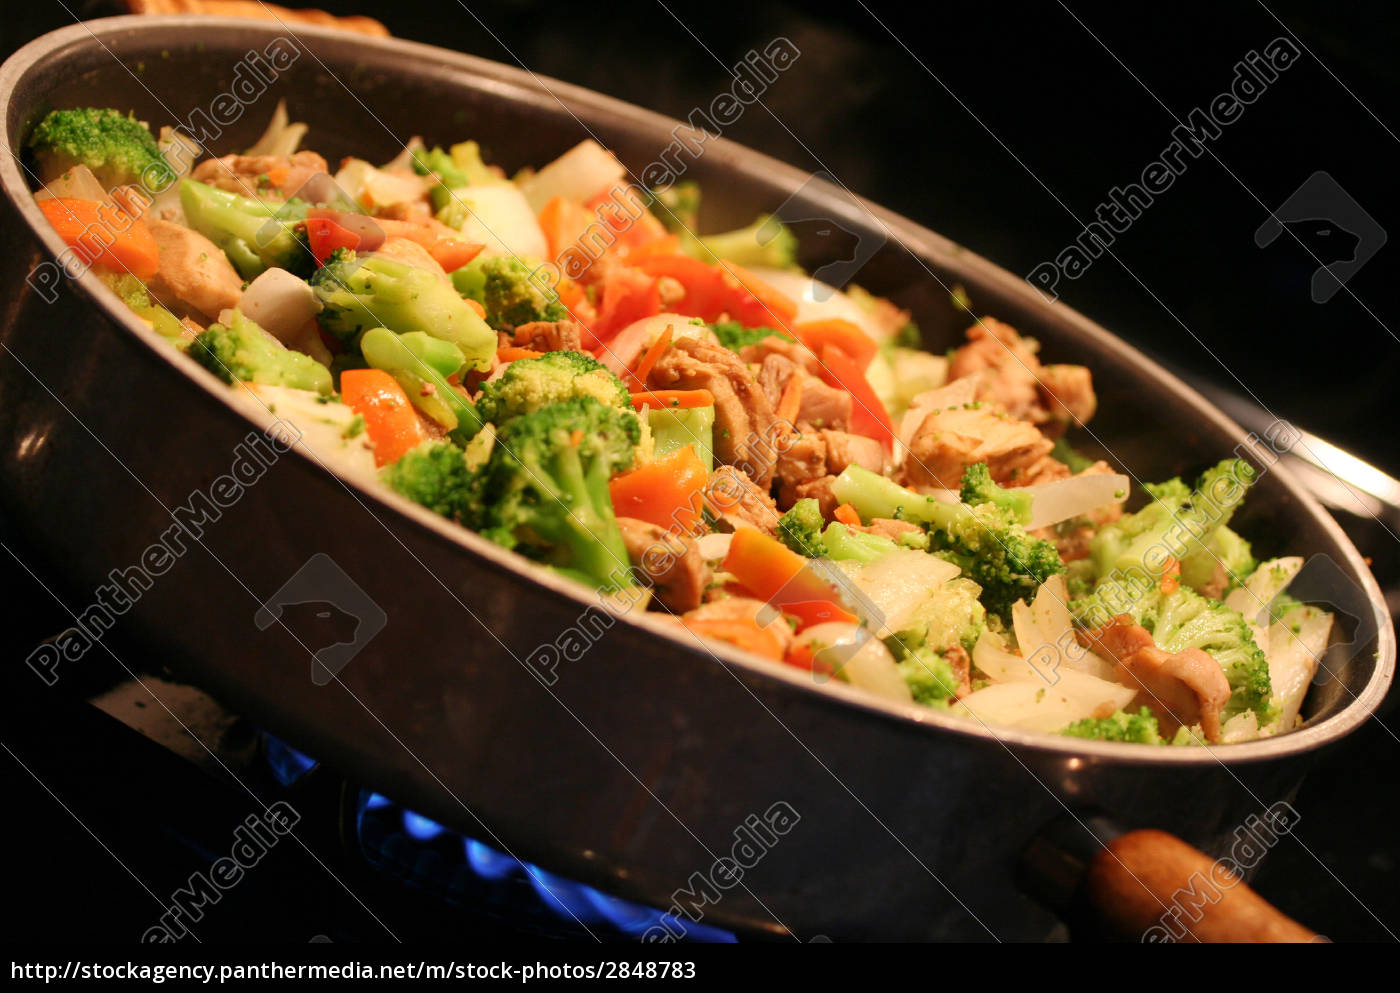 White, Lunch, Yellow, Colorful, ethnic, food - 2848783